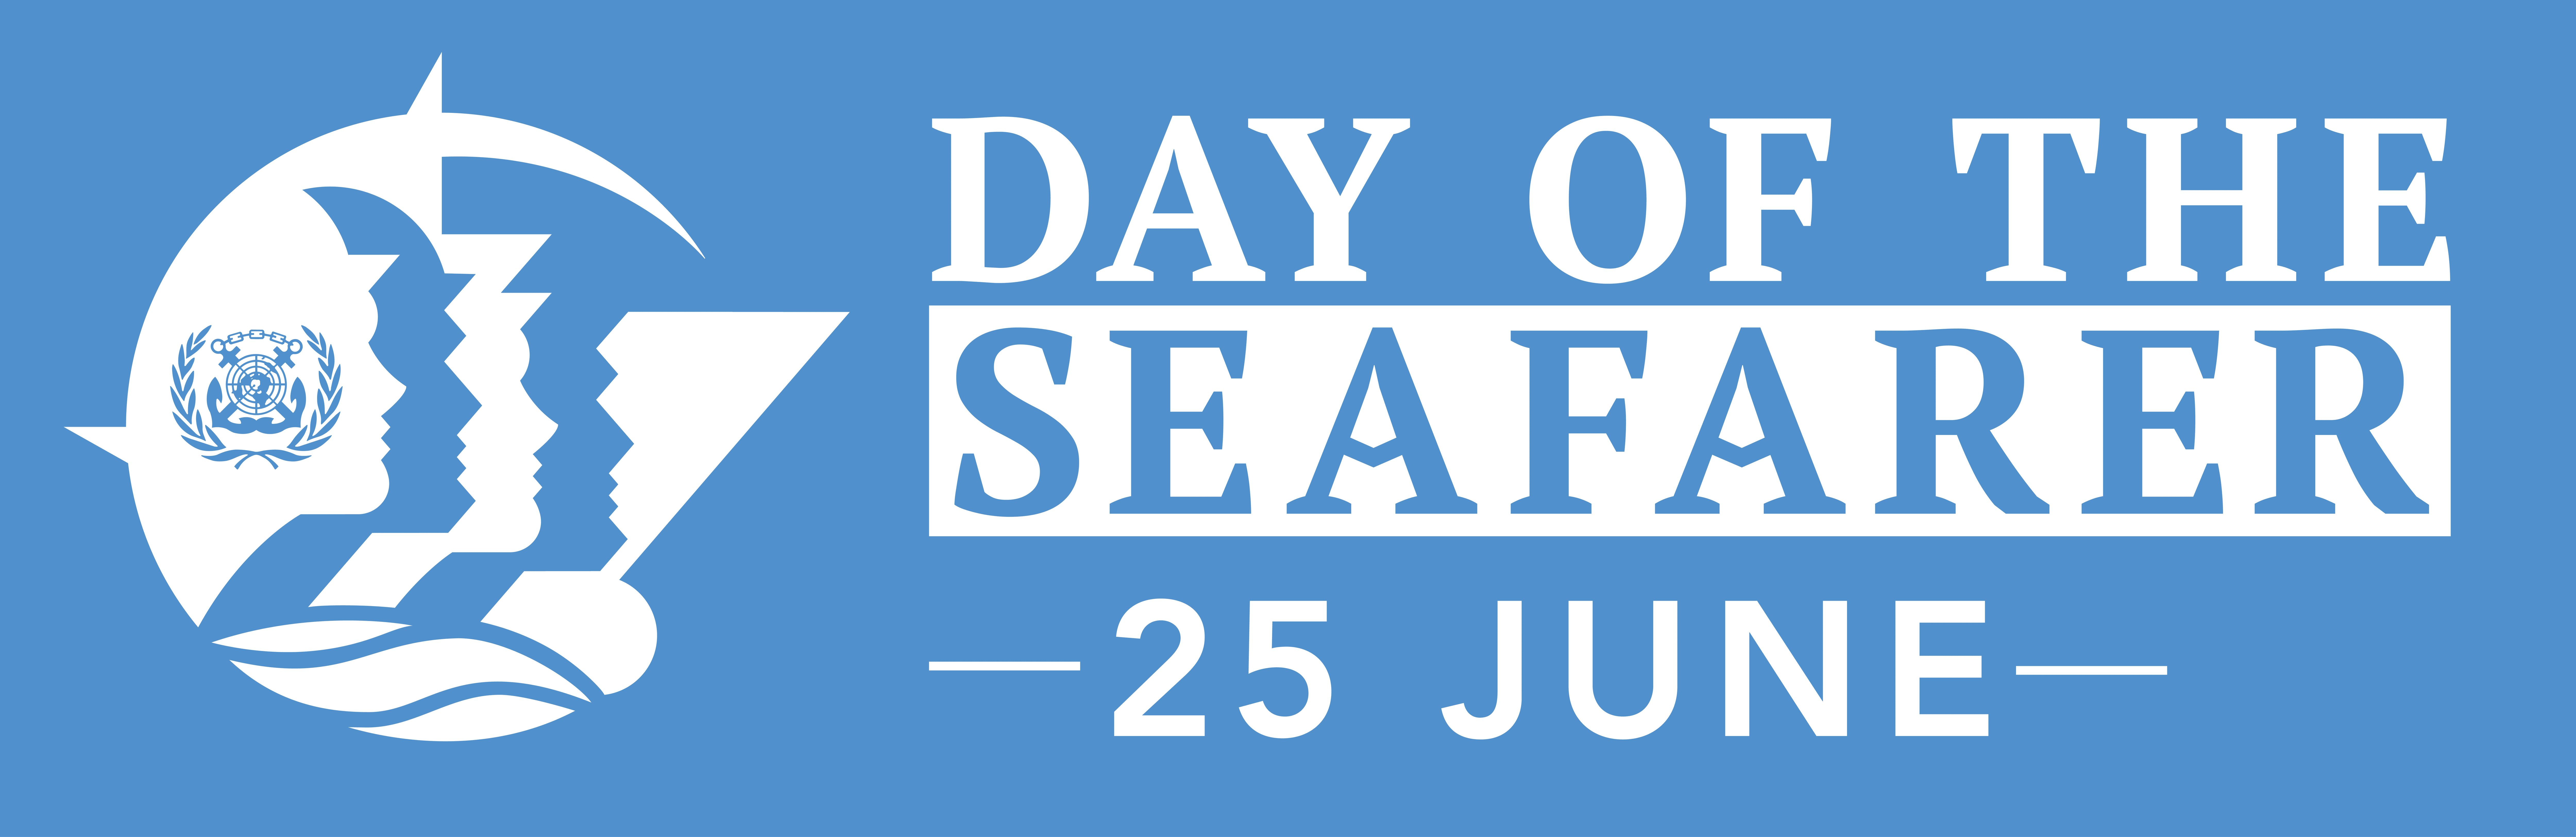 Minimum safe manning requirements being tackled on Day of the Seafarer